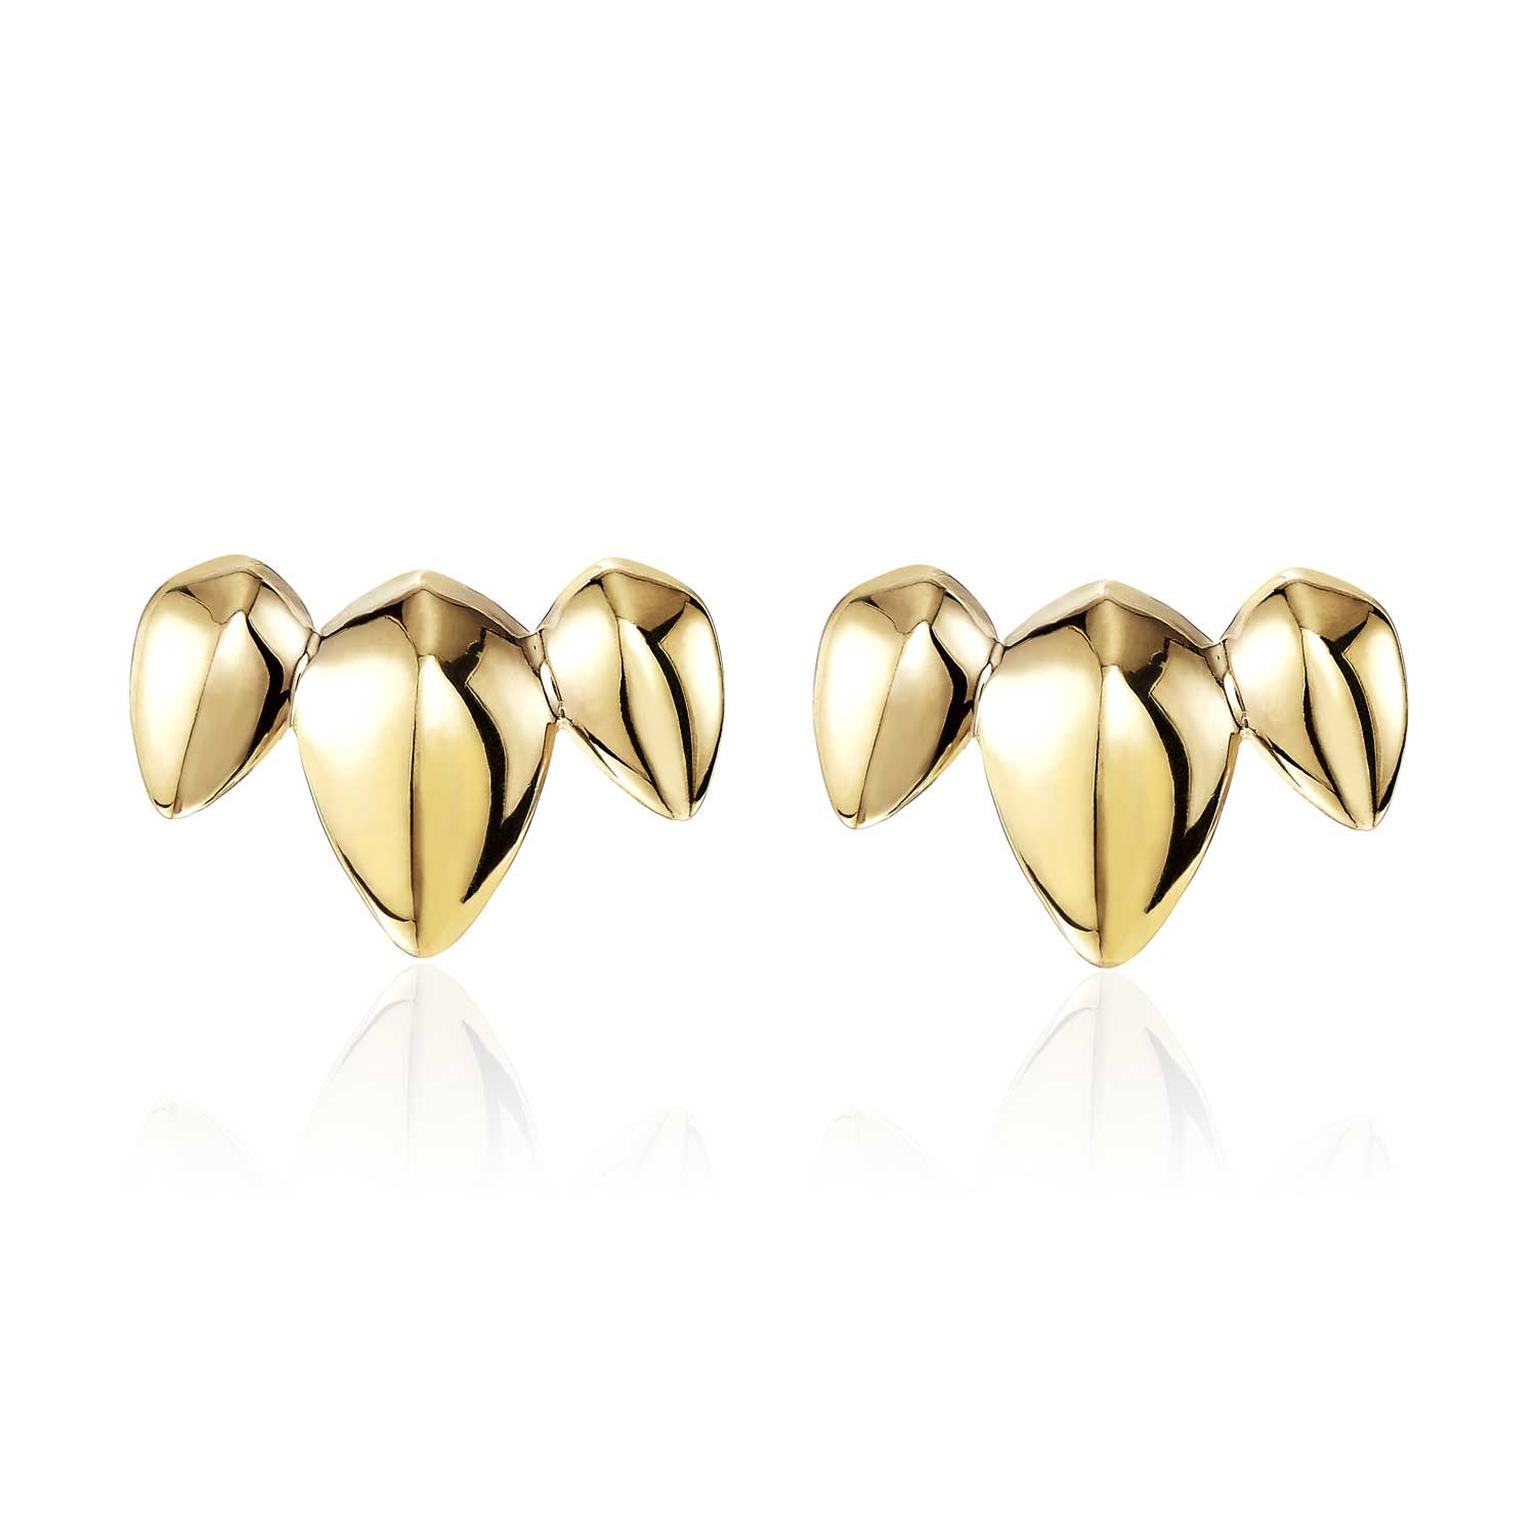 Patrick Mavros Pangolin Cresent stud earrings in gold